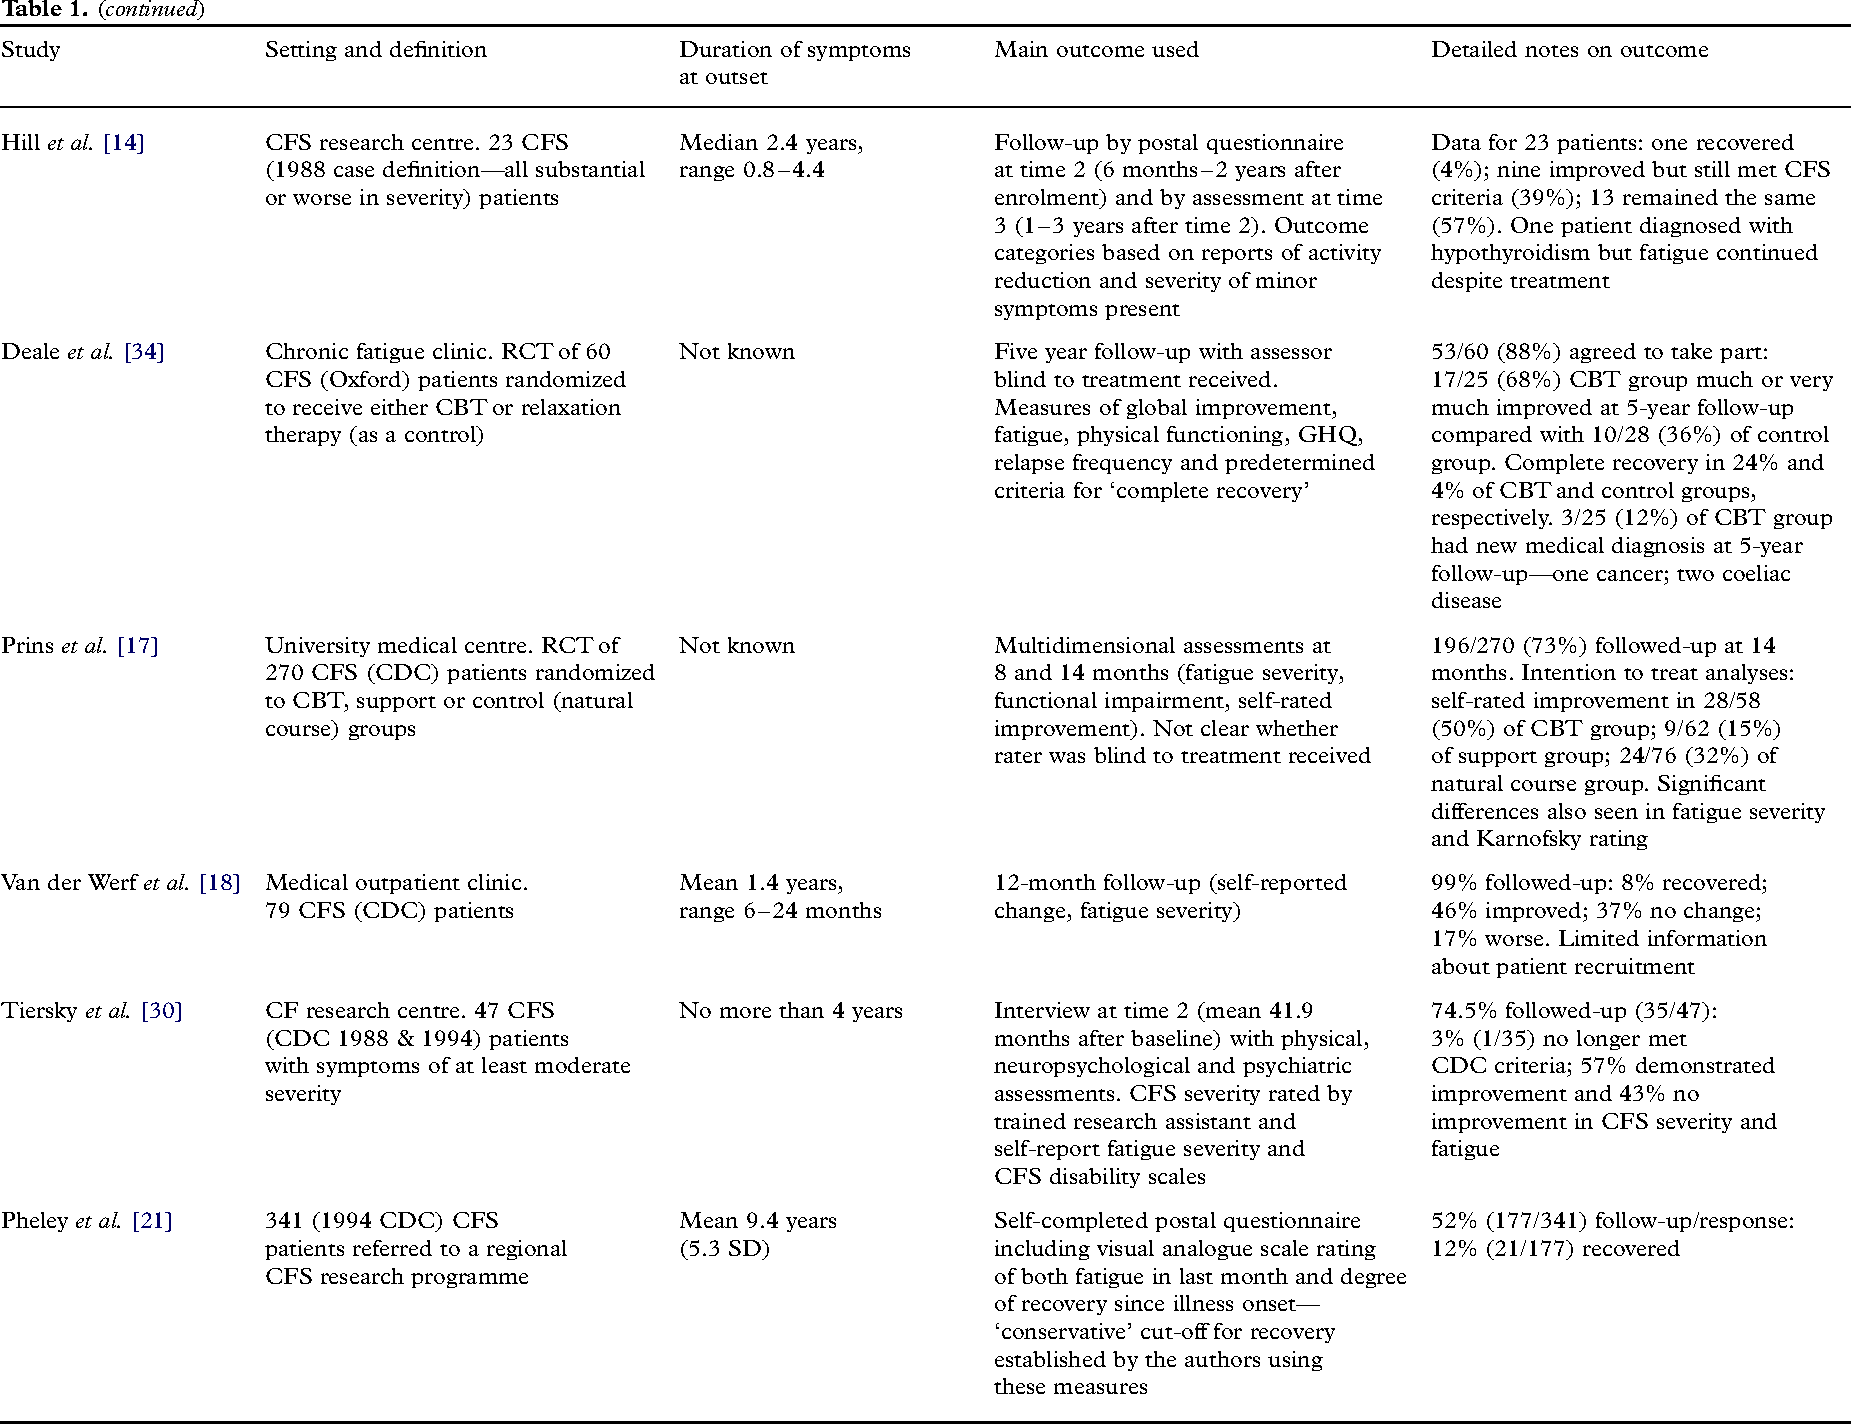 Table 1 from A systematic review describing the prognosis of